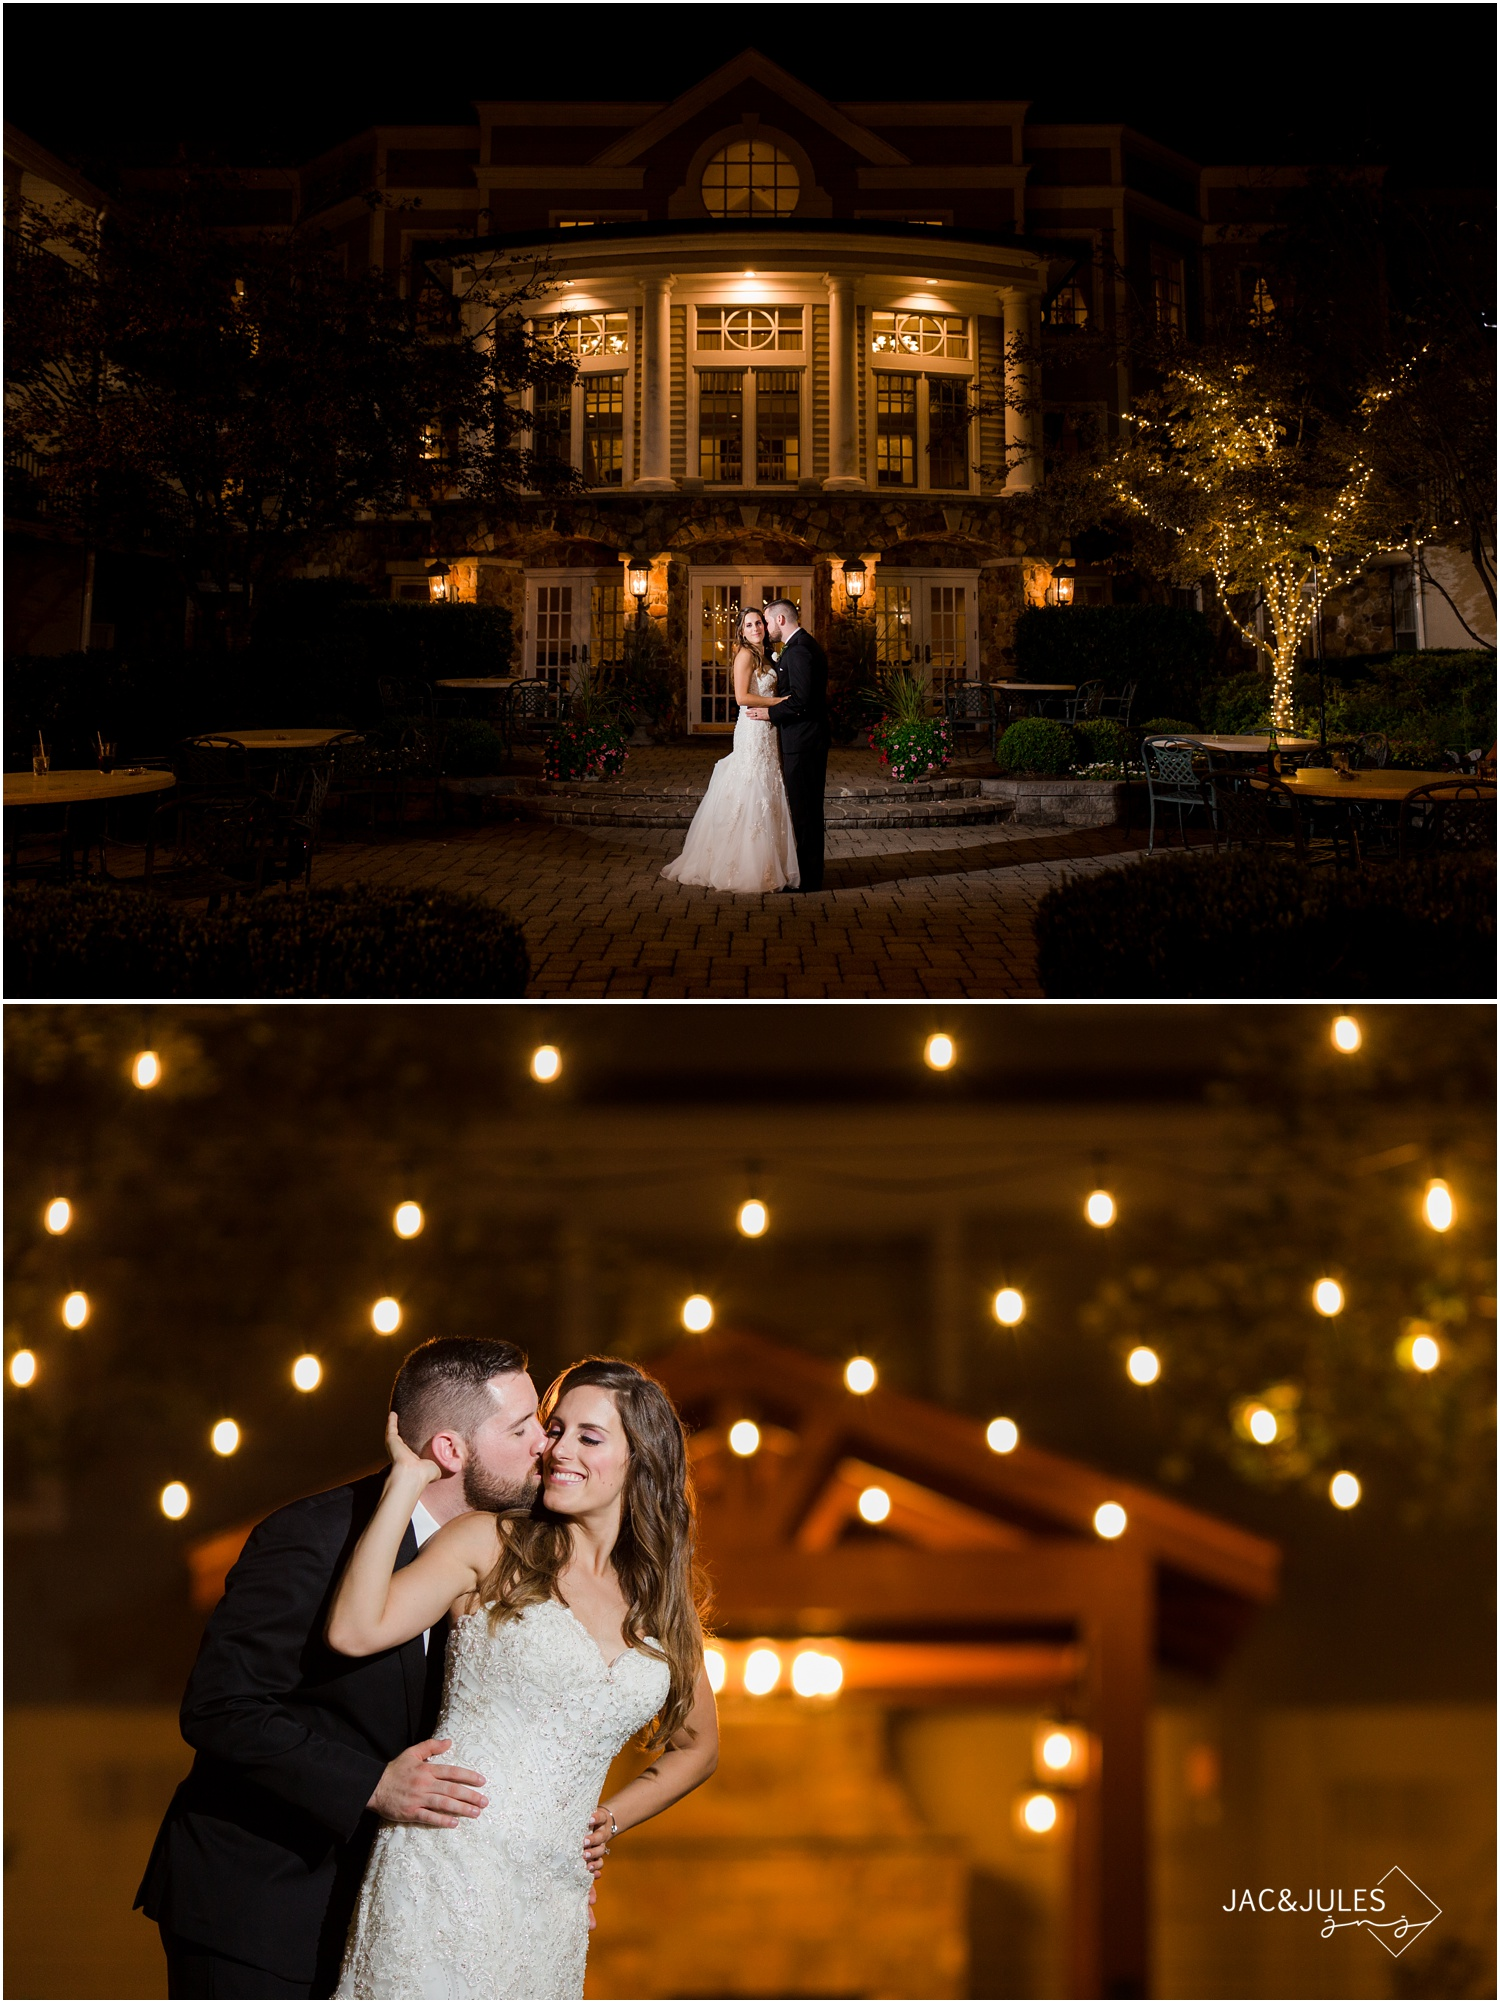 night time portraits of bride and groom during wedding reception at The olde mill inn in Basking Ridge, NJ.